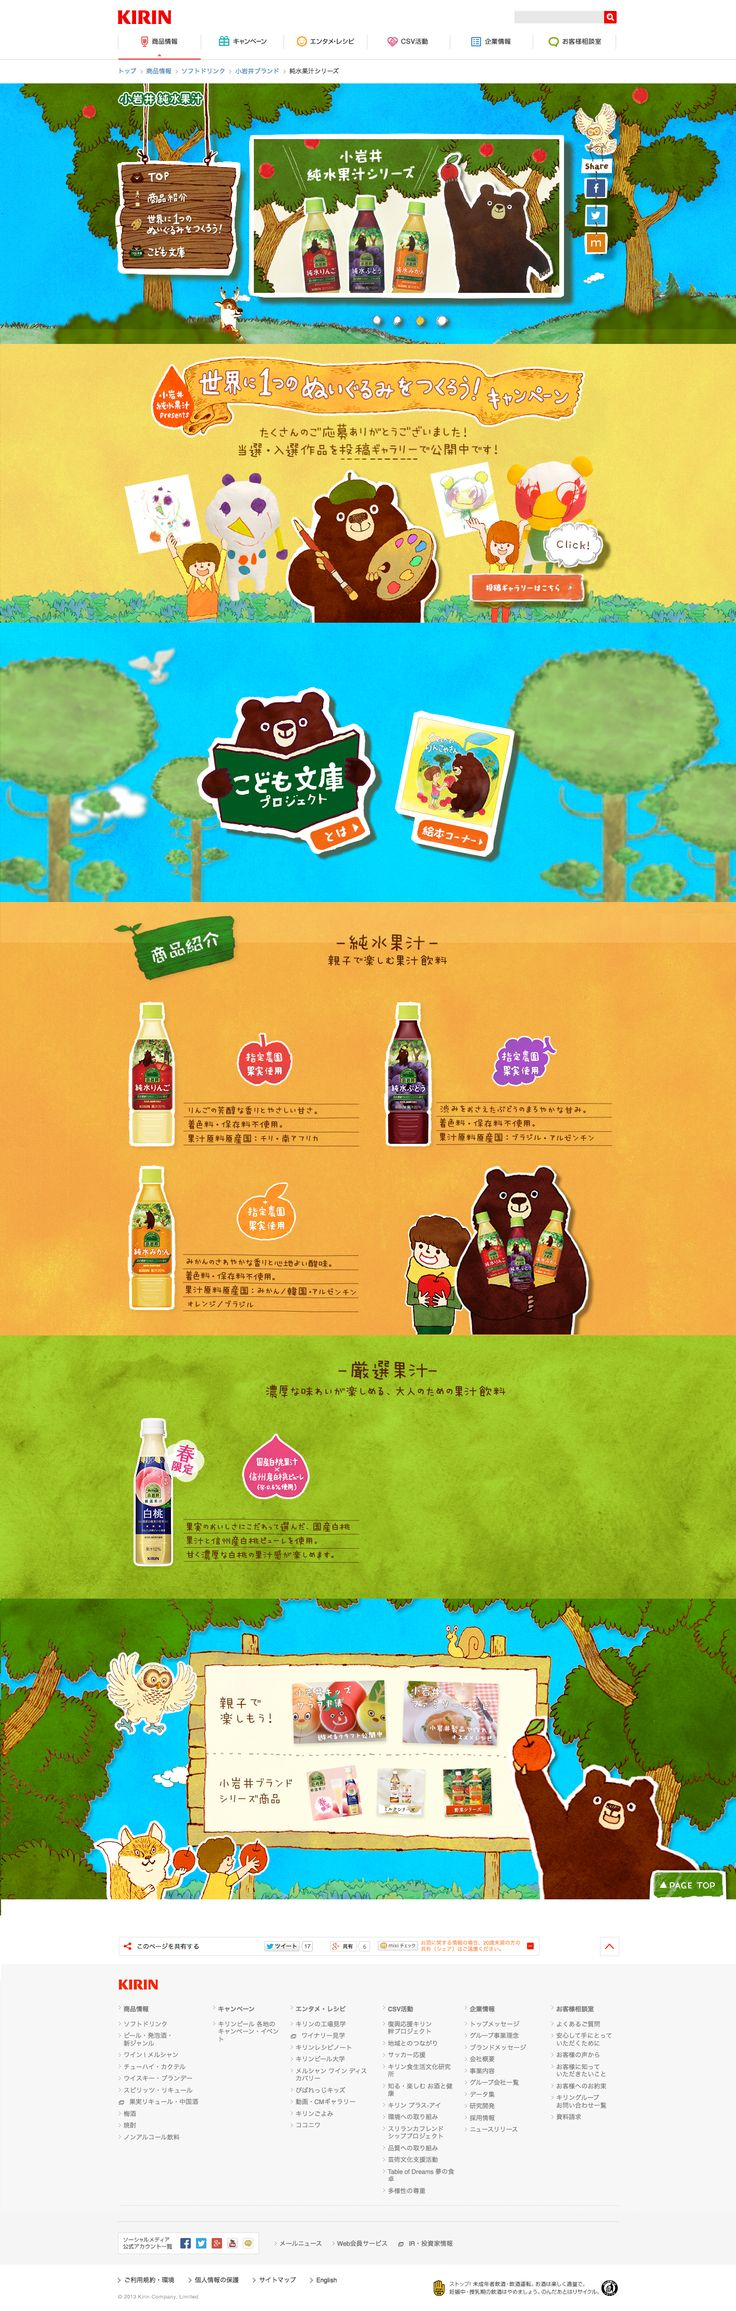 http://www.kirin.co.jp/products/softdrink/koiwai/fruit/index.html